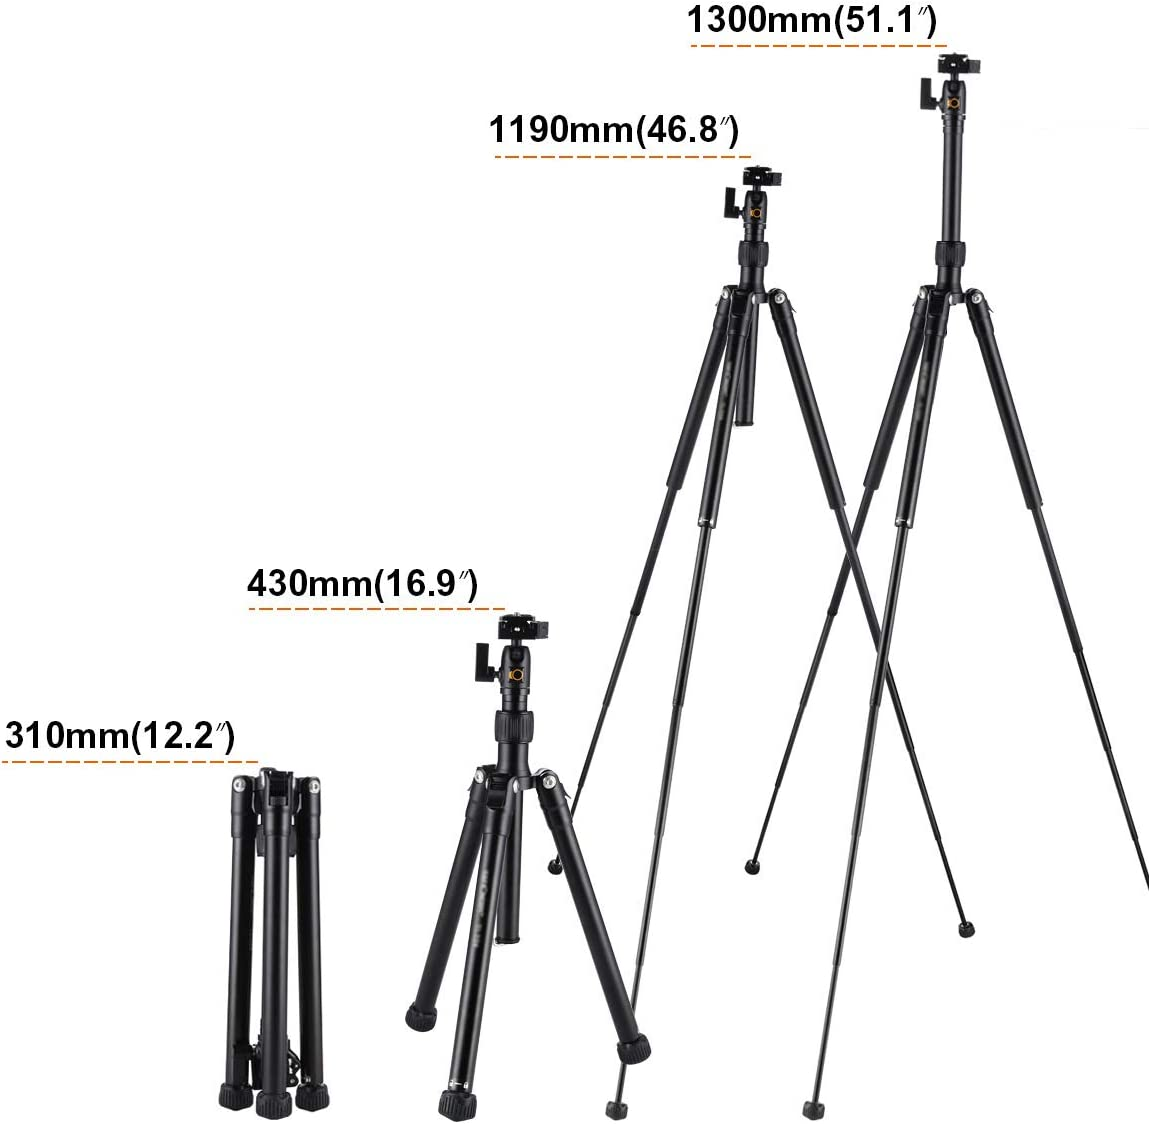 DZSM Lightweight Portable Magnesium Aluminum Tripod with Ball Head Outdoor Travel SLR Camera Photography Tripod